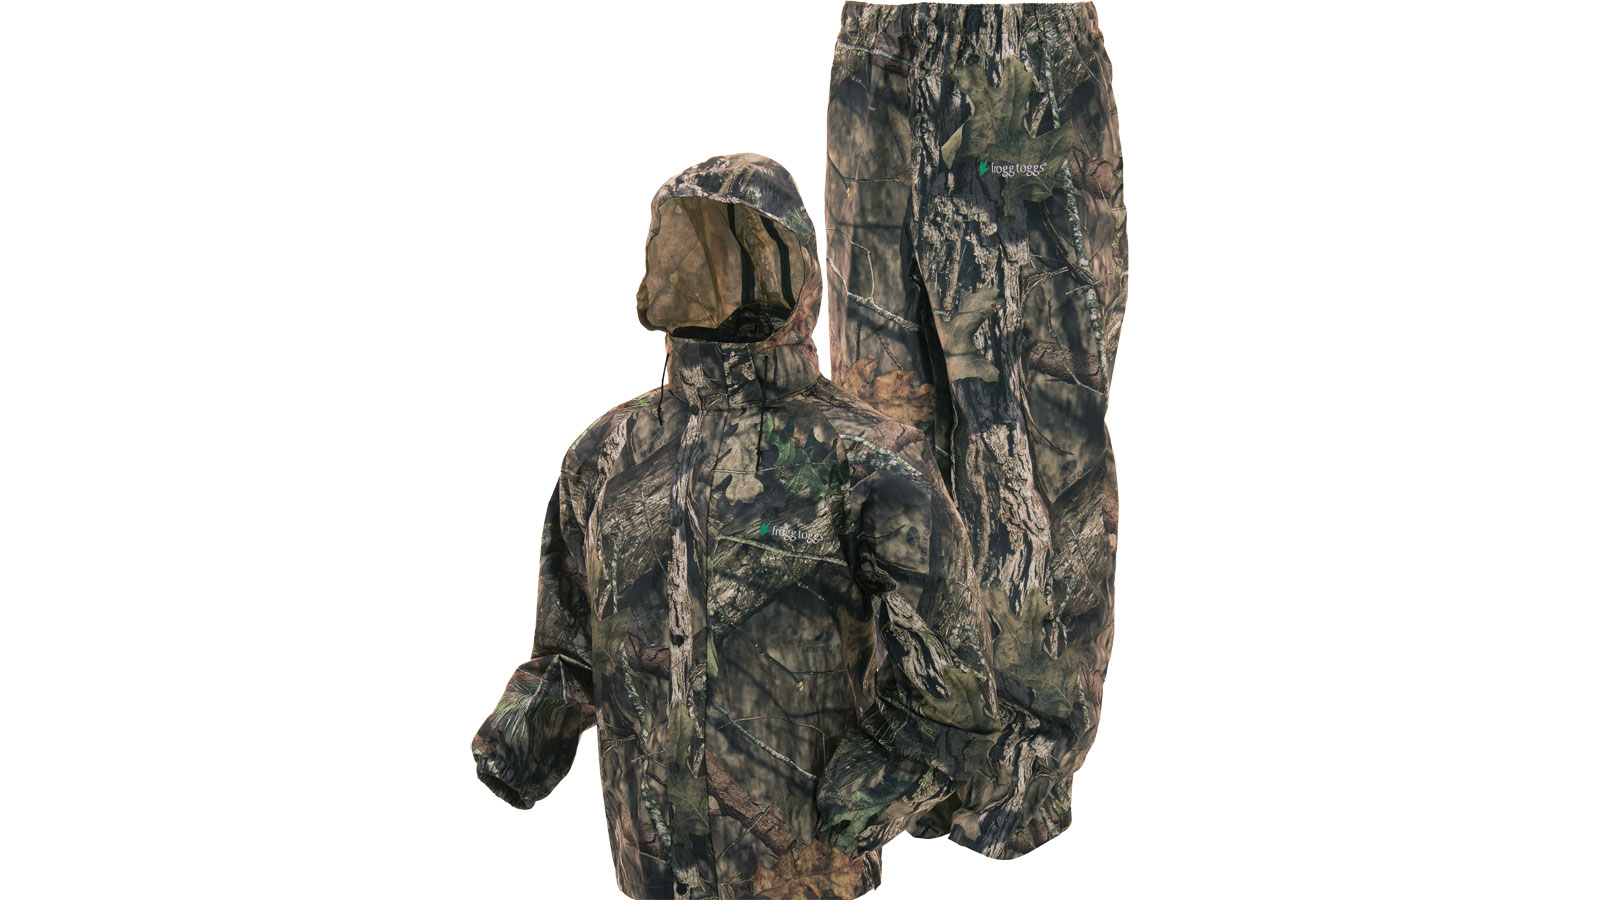 Frogg Toggs All Sport Waterproof Suit Mossy Oak Break-Up Country Camo Size Large